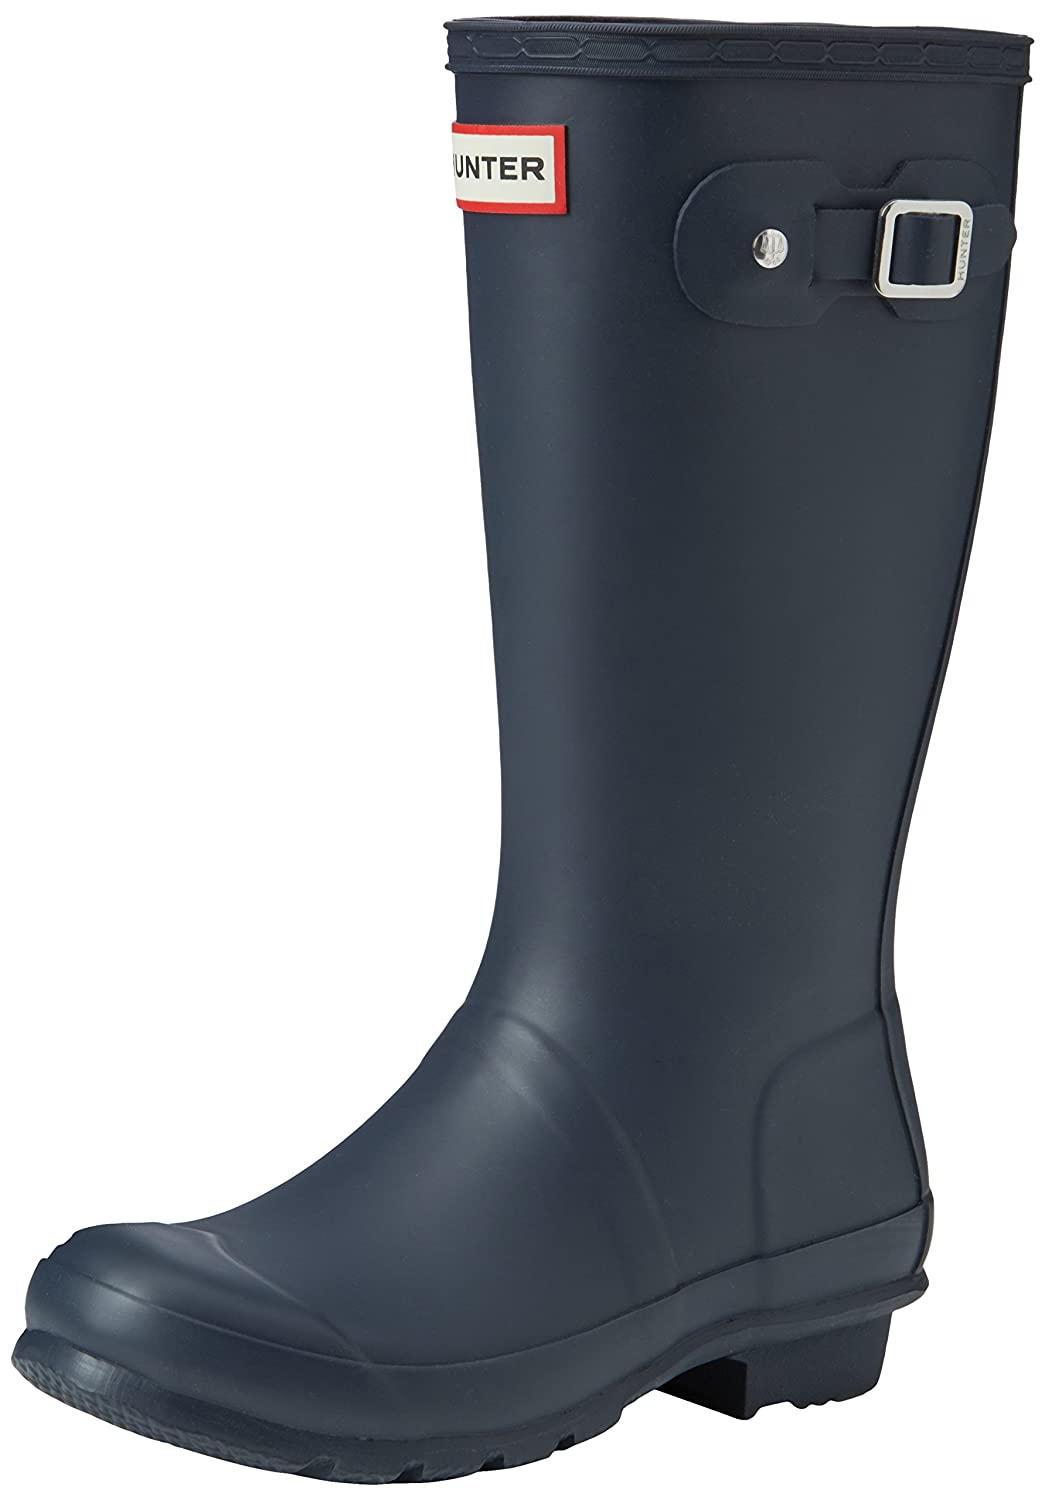 HunterHunter Original Wellies Botas Unisex para niños